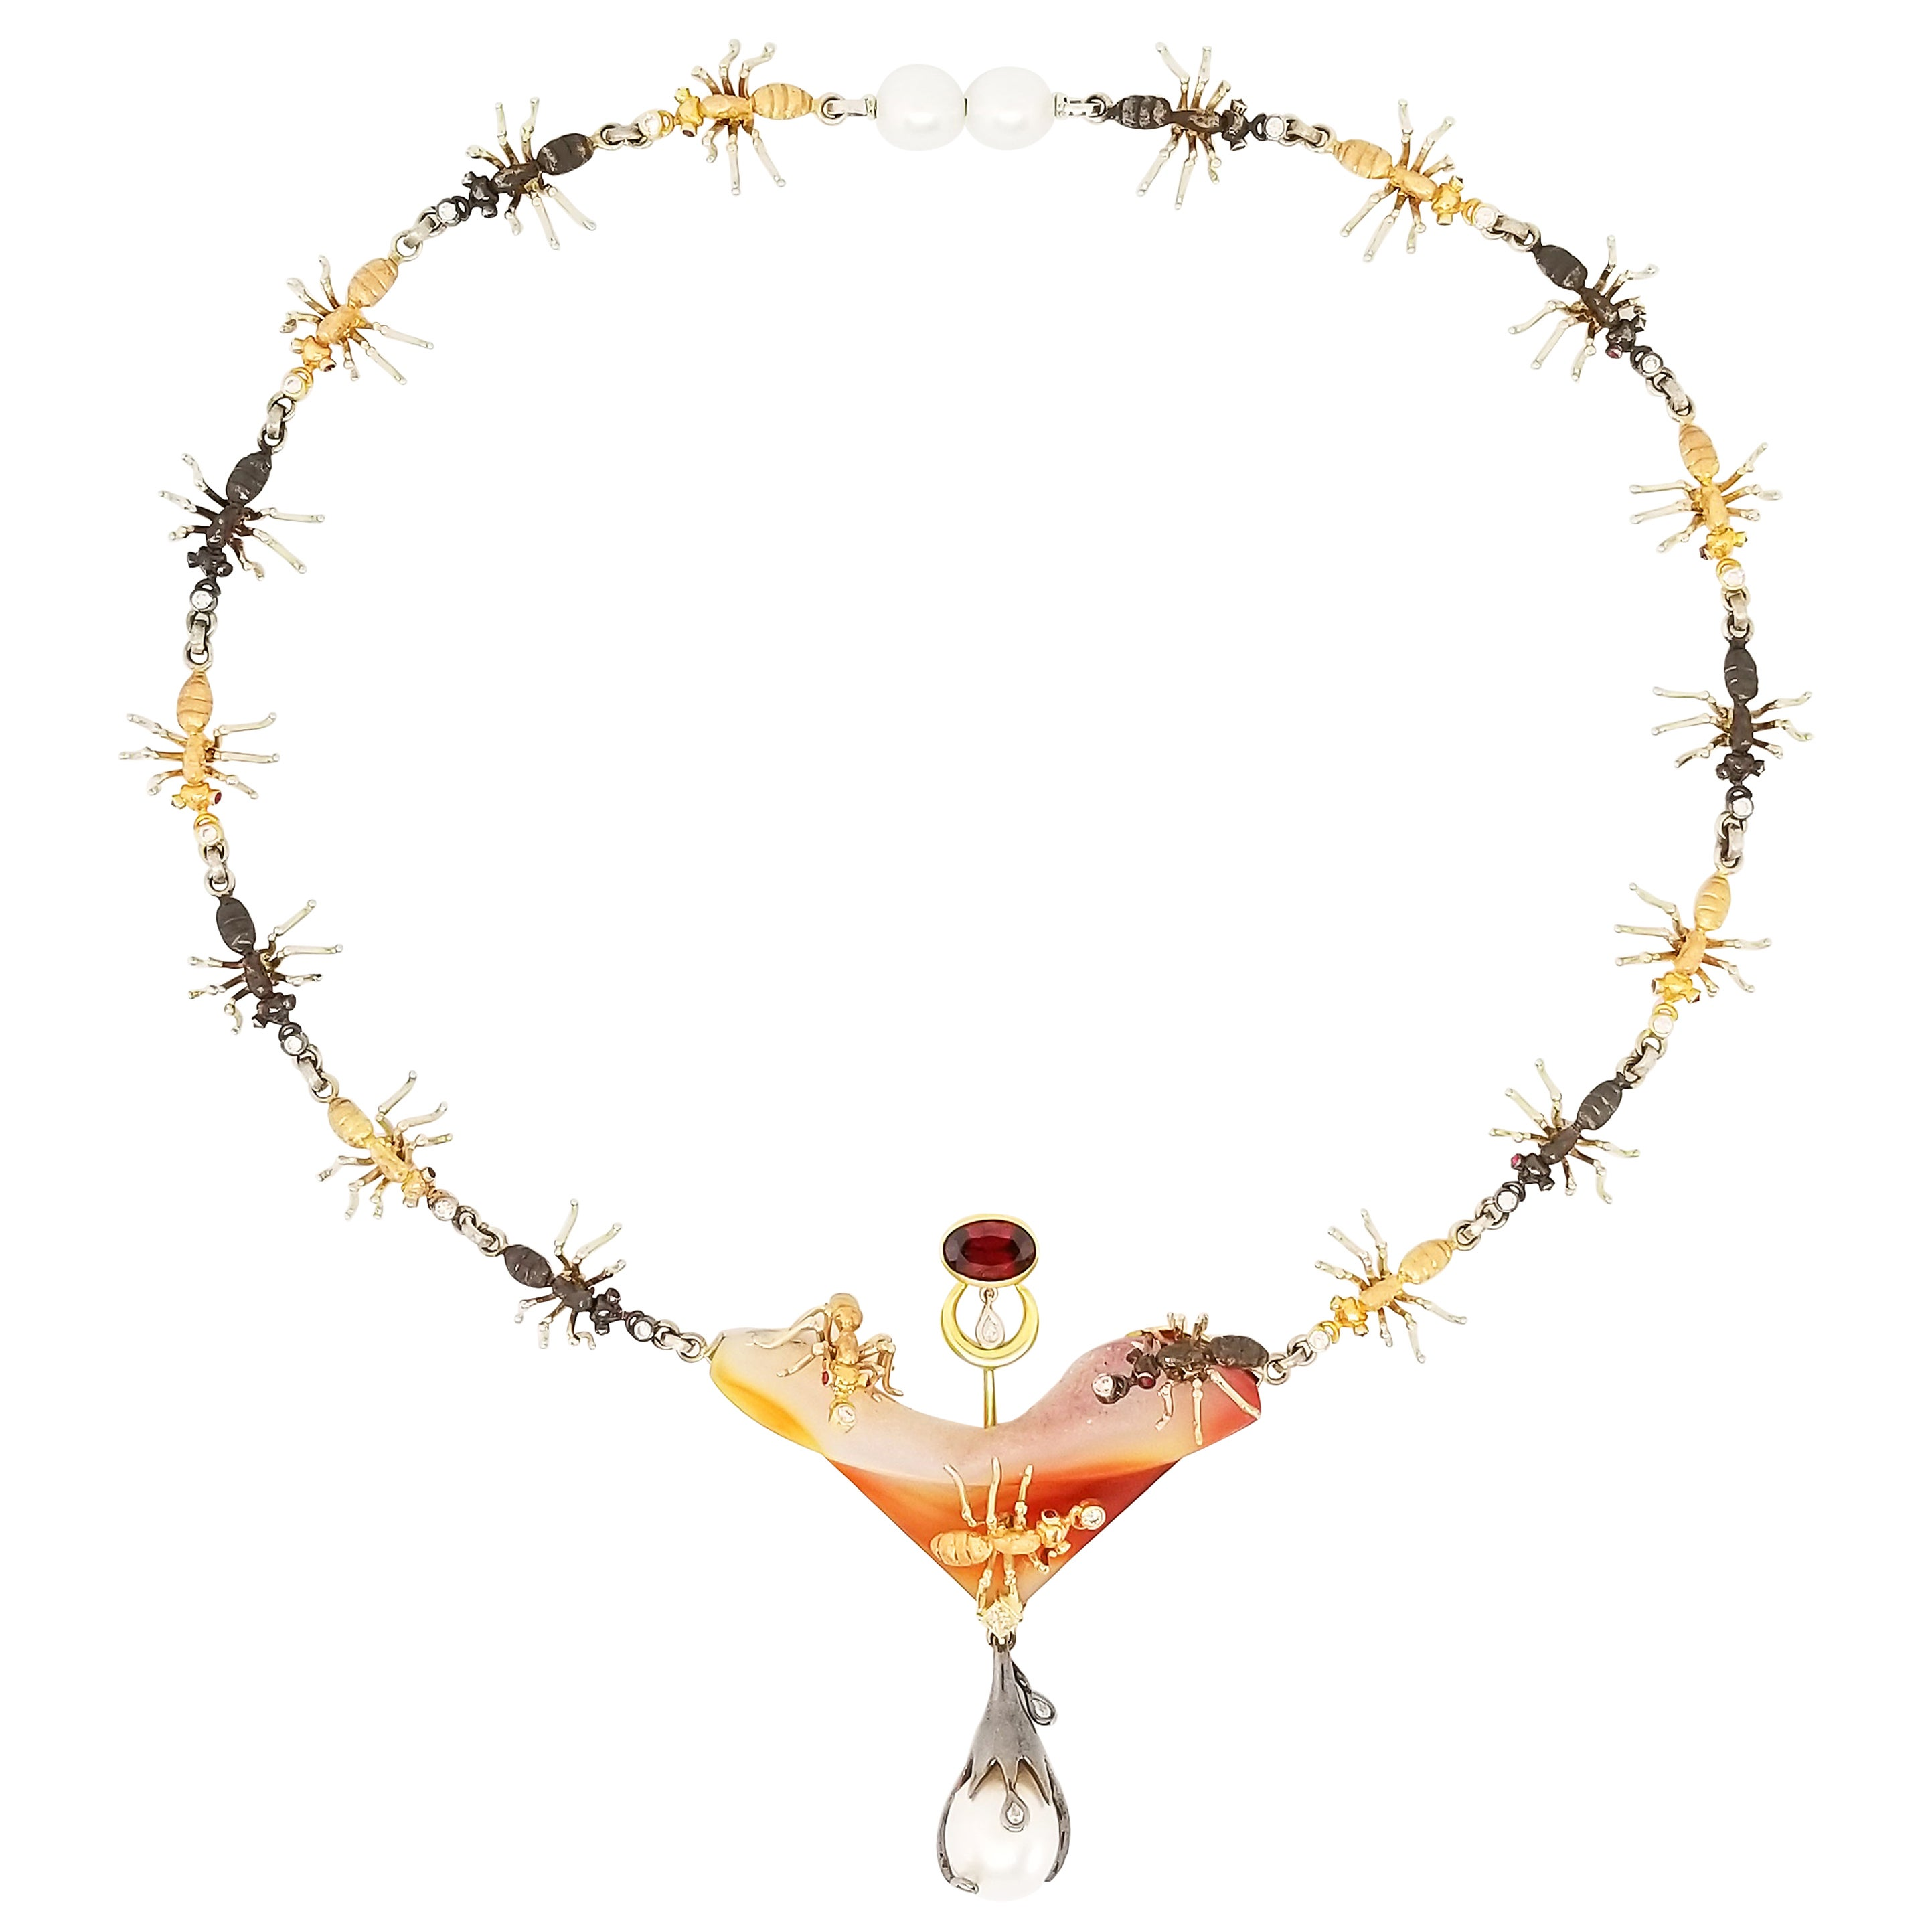 Ant Insect Necklace Gold Platinum Ruby Red Zircon Diamond South Sea Pearl Agate